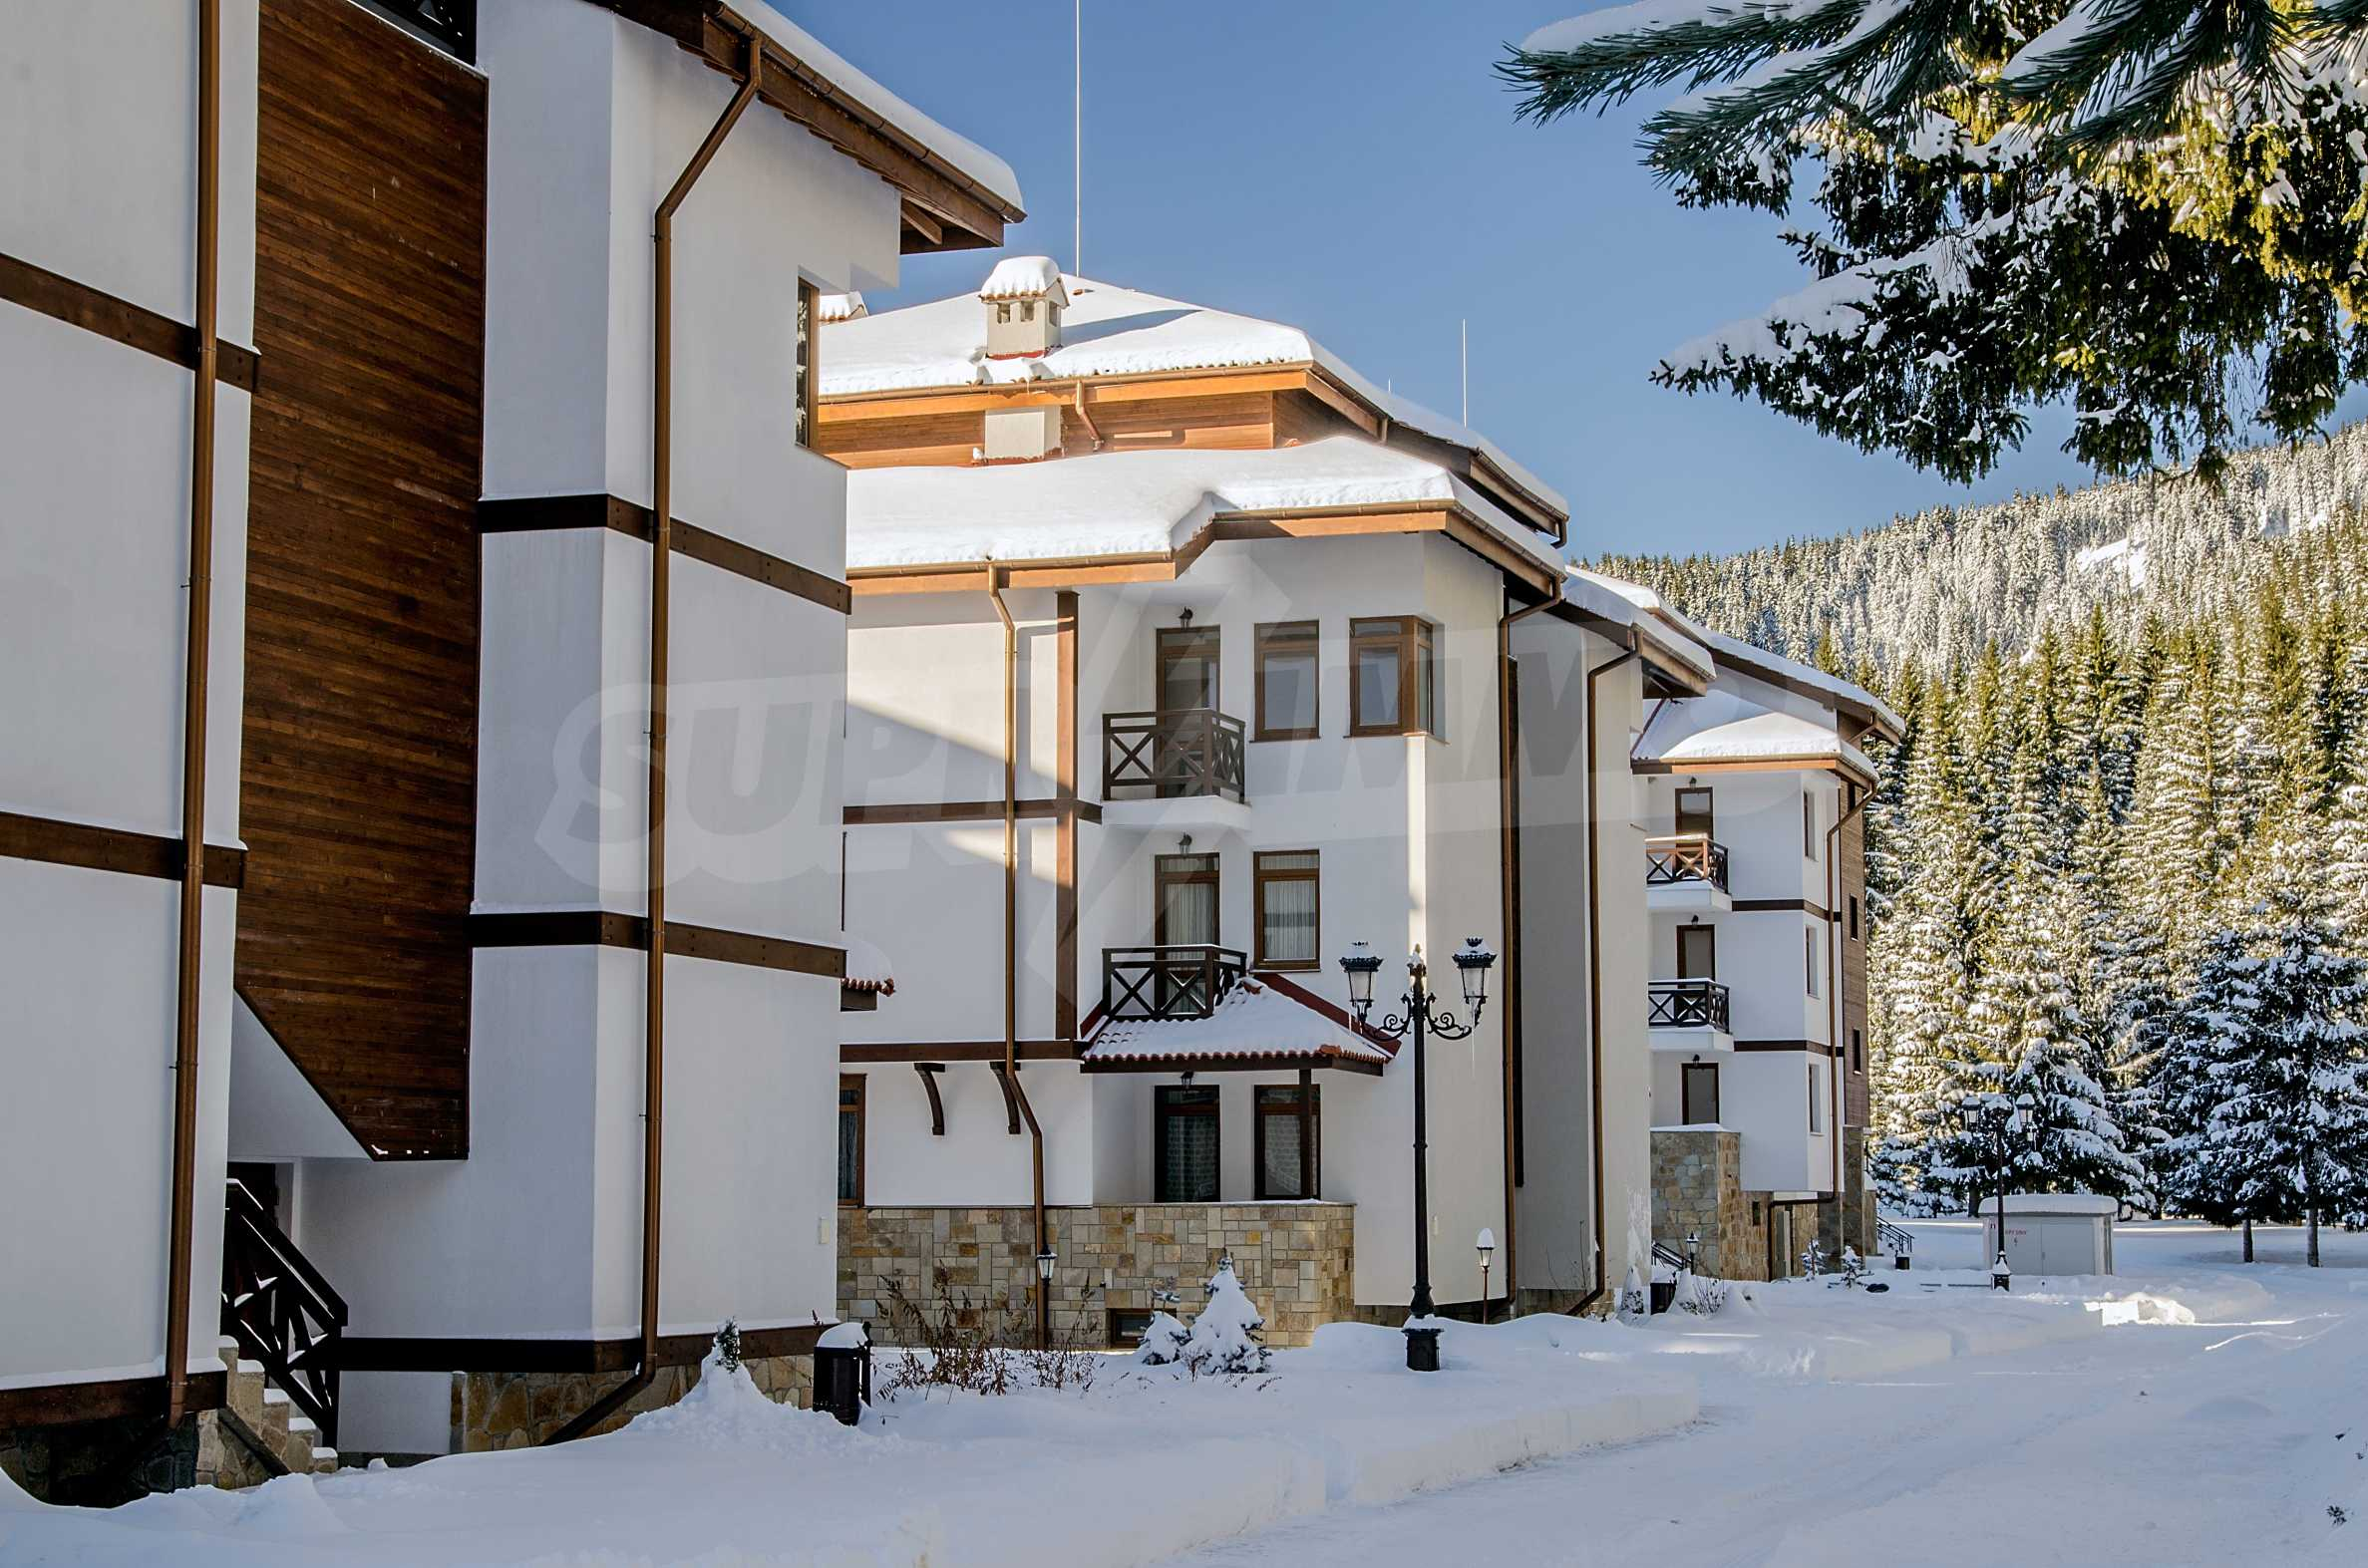 3-bedroom apartment in Pamporovo 15